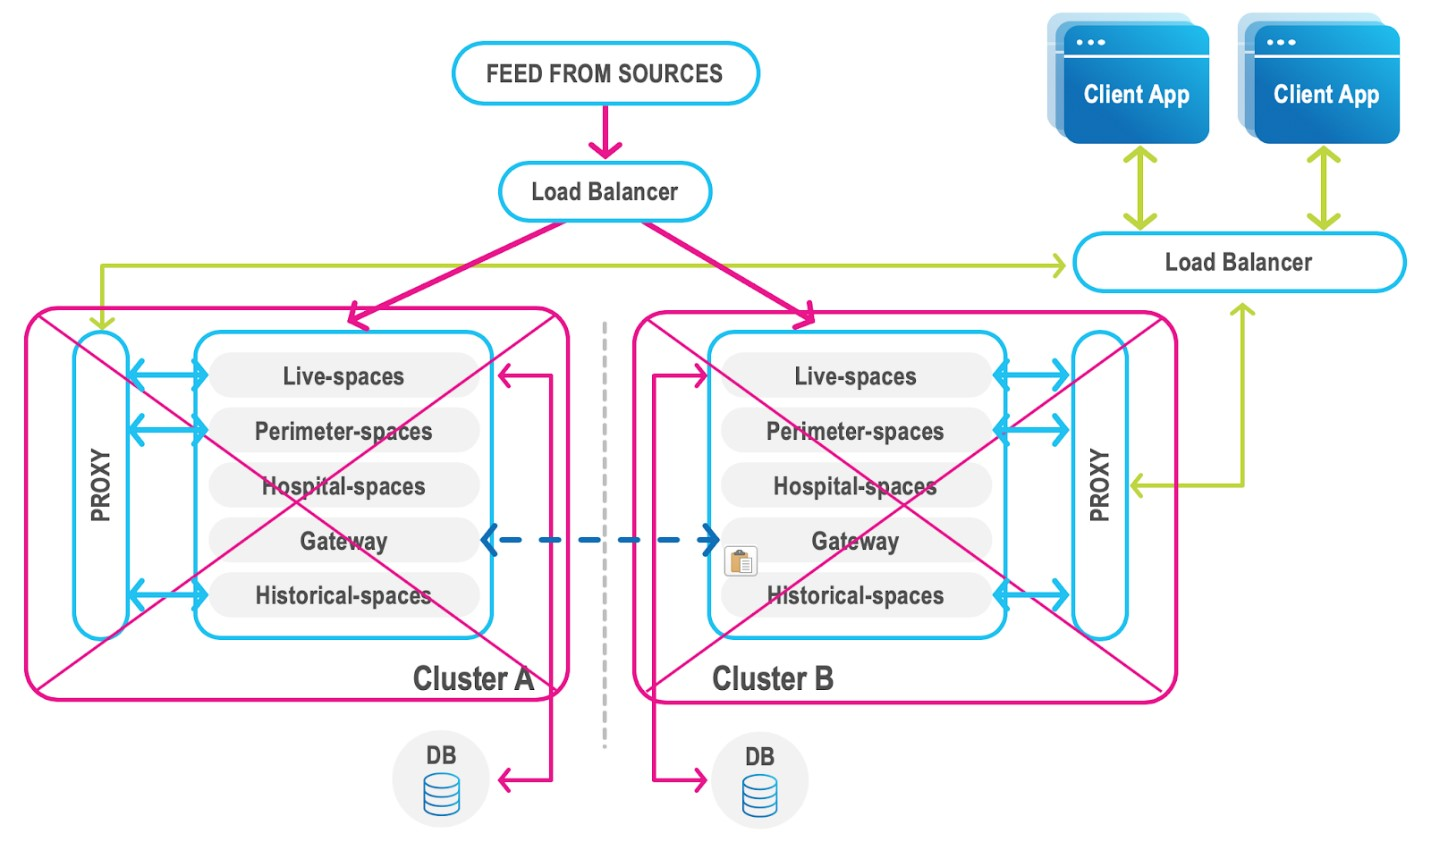 FMEA – RTO and Business Continuity